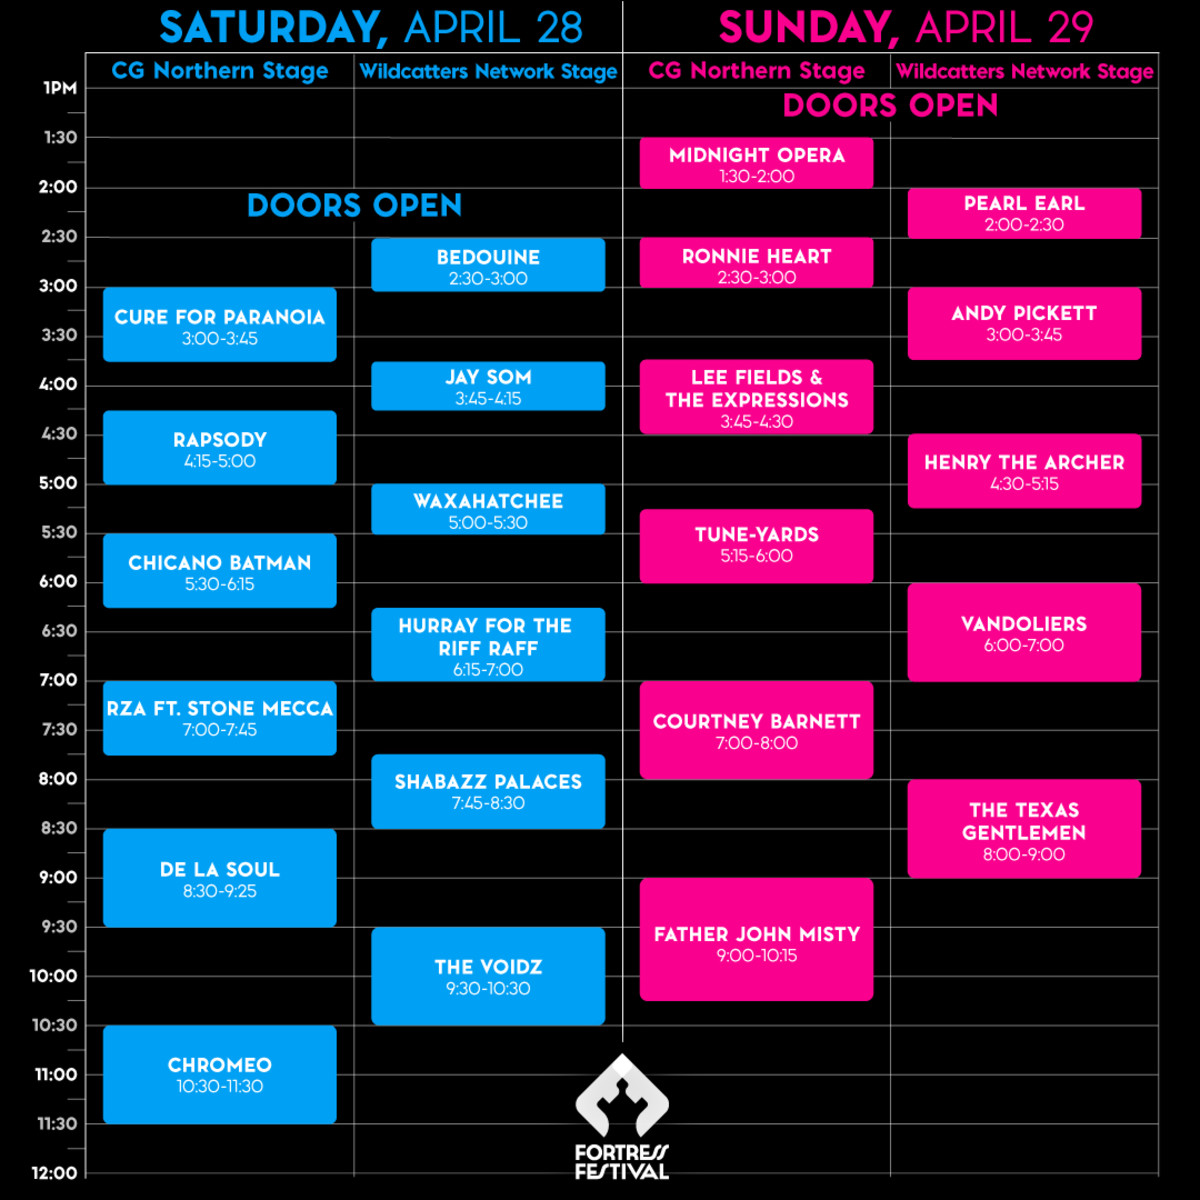 Fortress SET TIMES